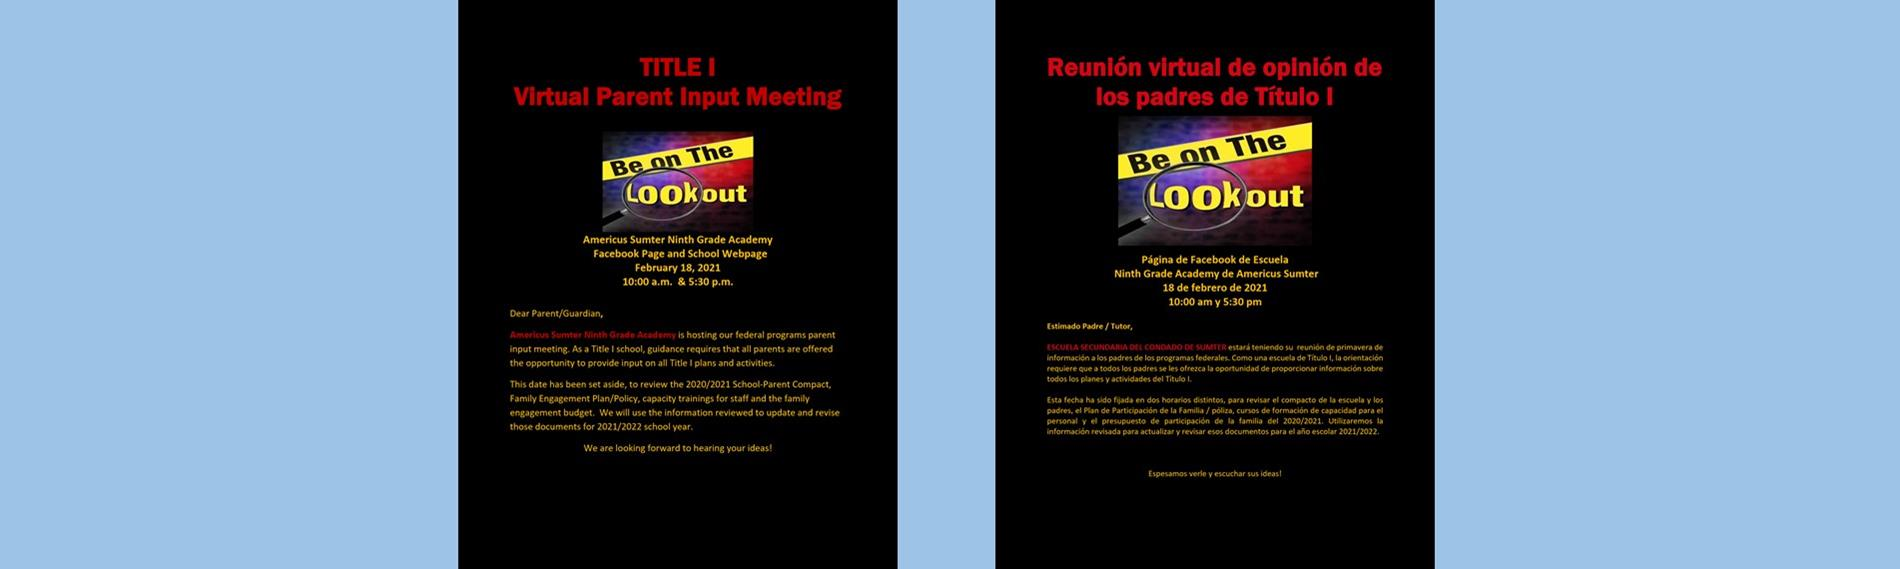 Invitation to attend virtual meeting